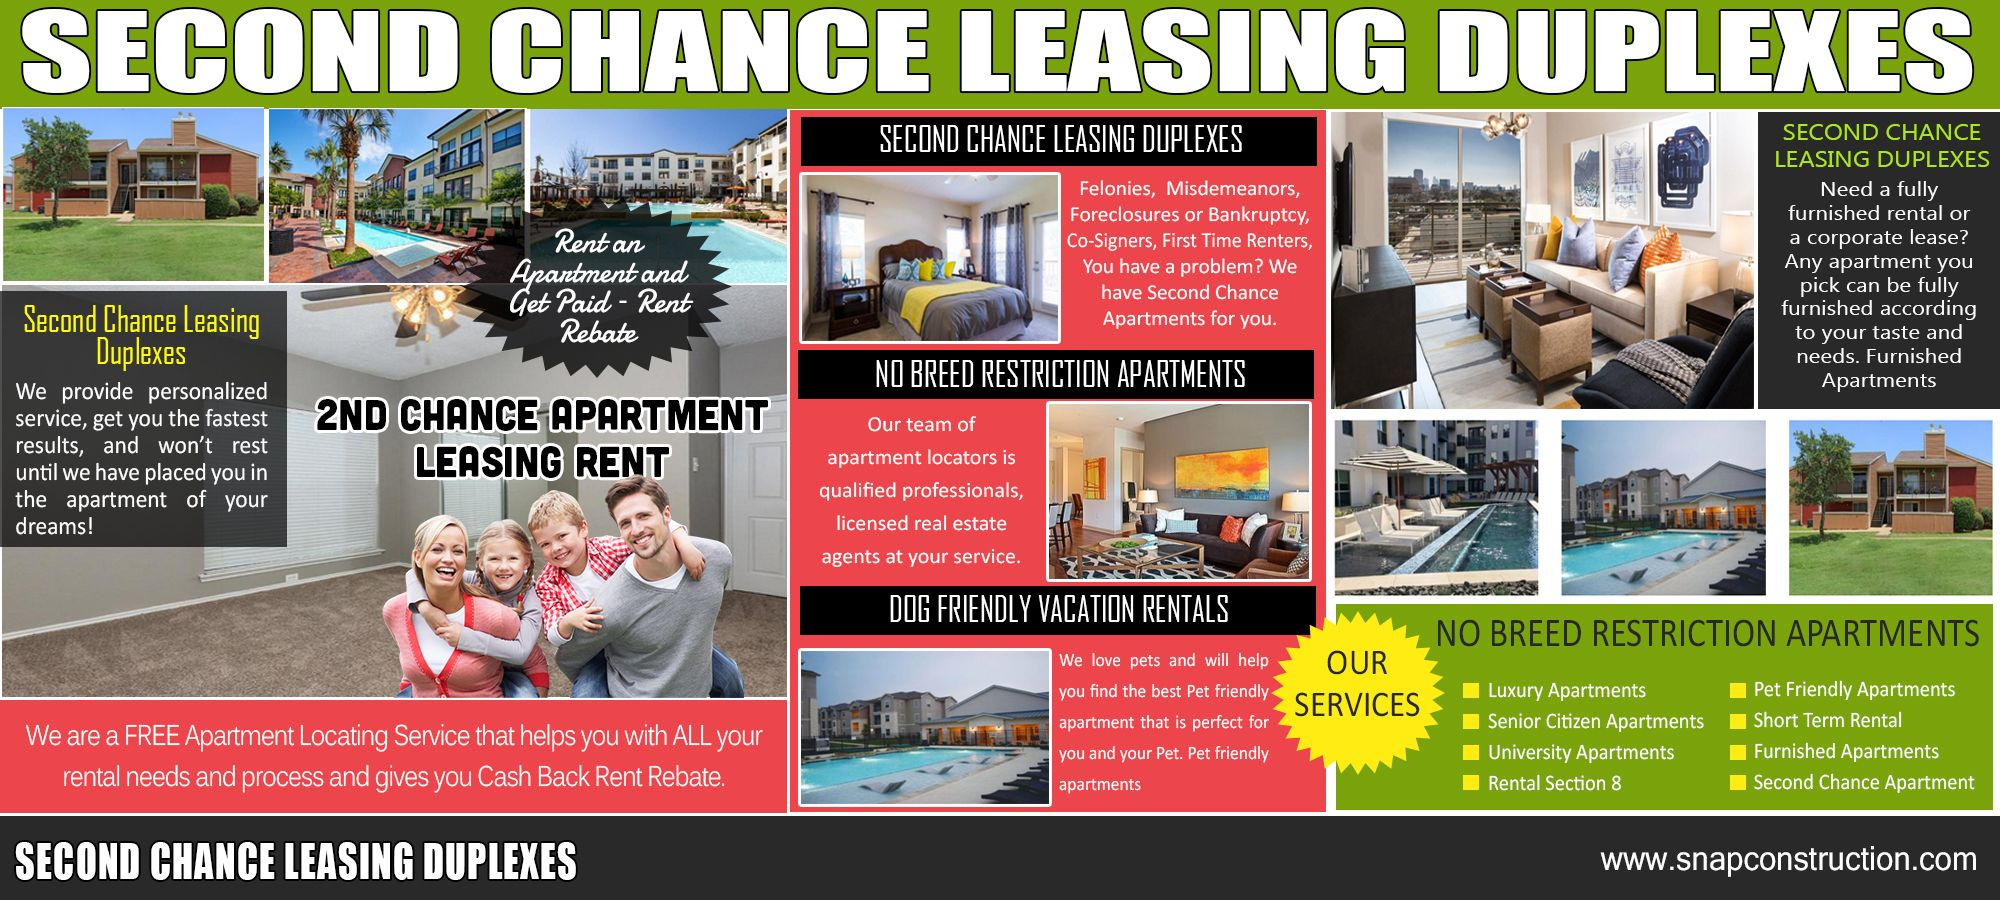 Second Chance Leasing Duplexes Dog friendly vacation